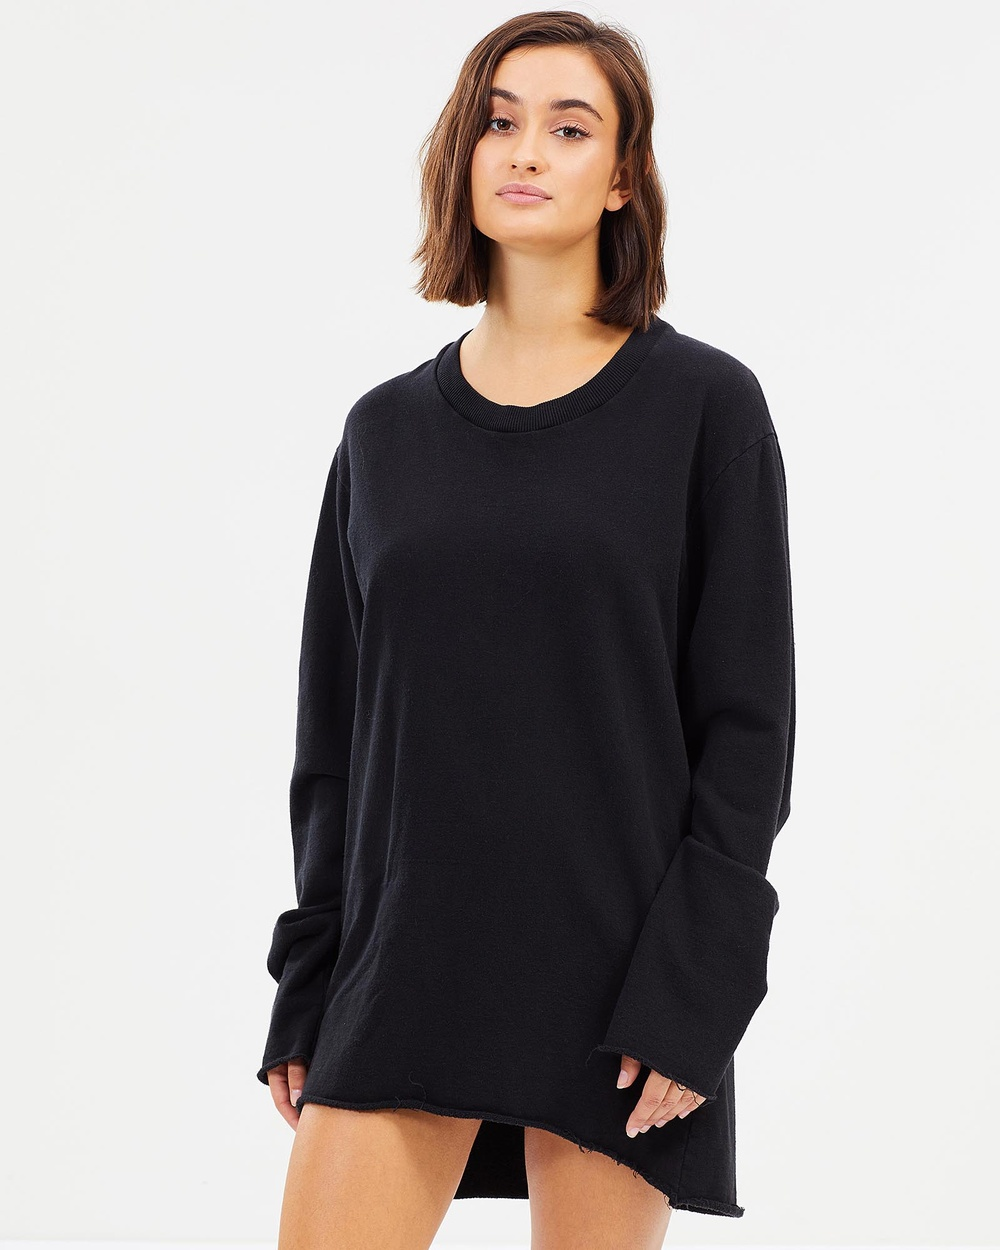 Surrounded By Ghosts The Cadmium Crew Dress Dresses Black The Cadmium Crew Dress